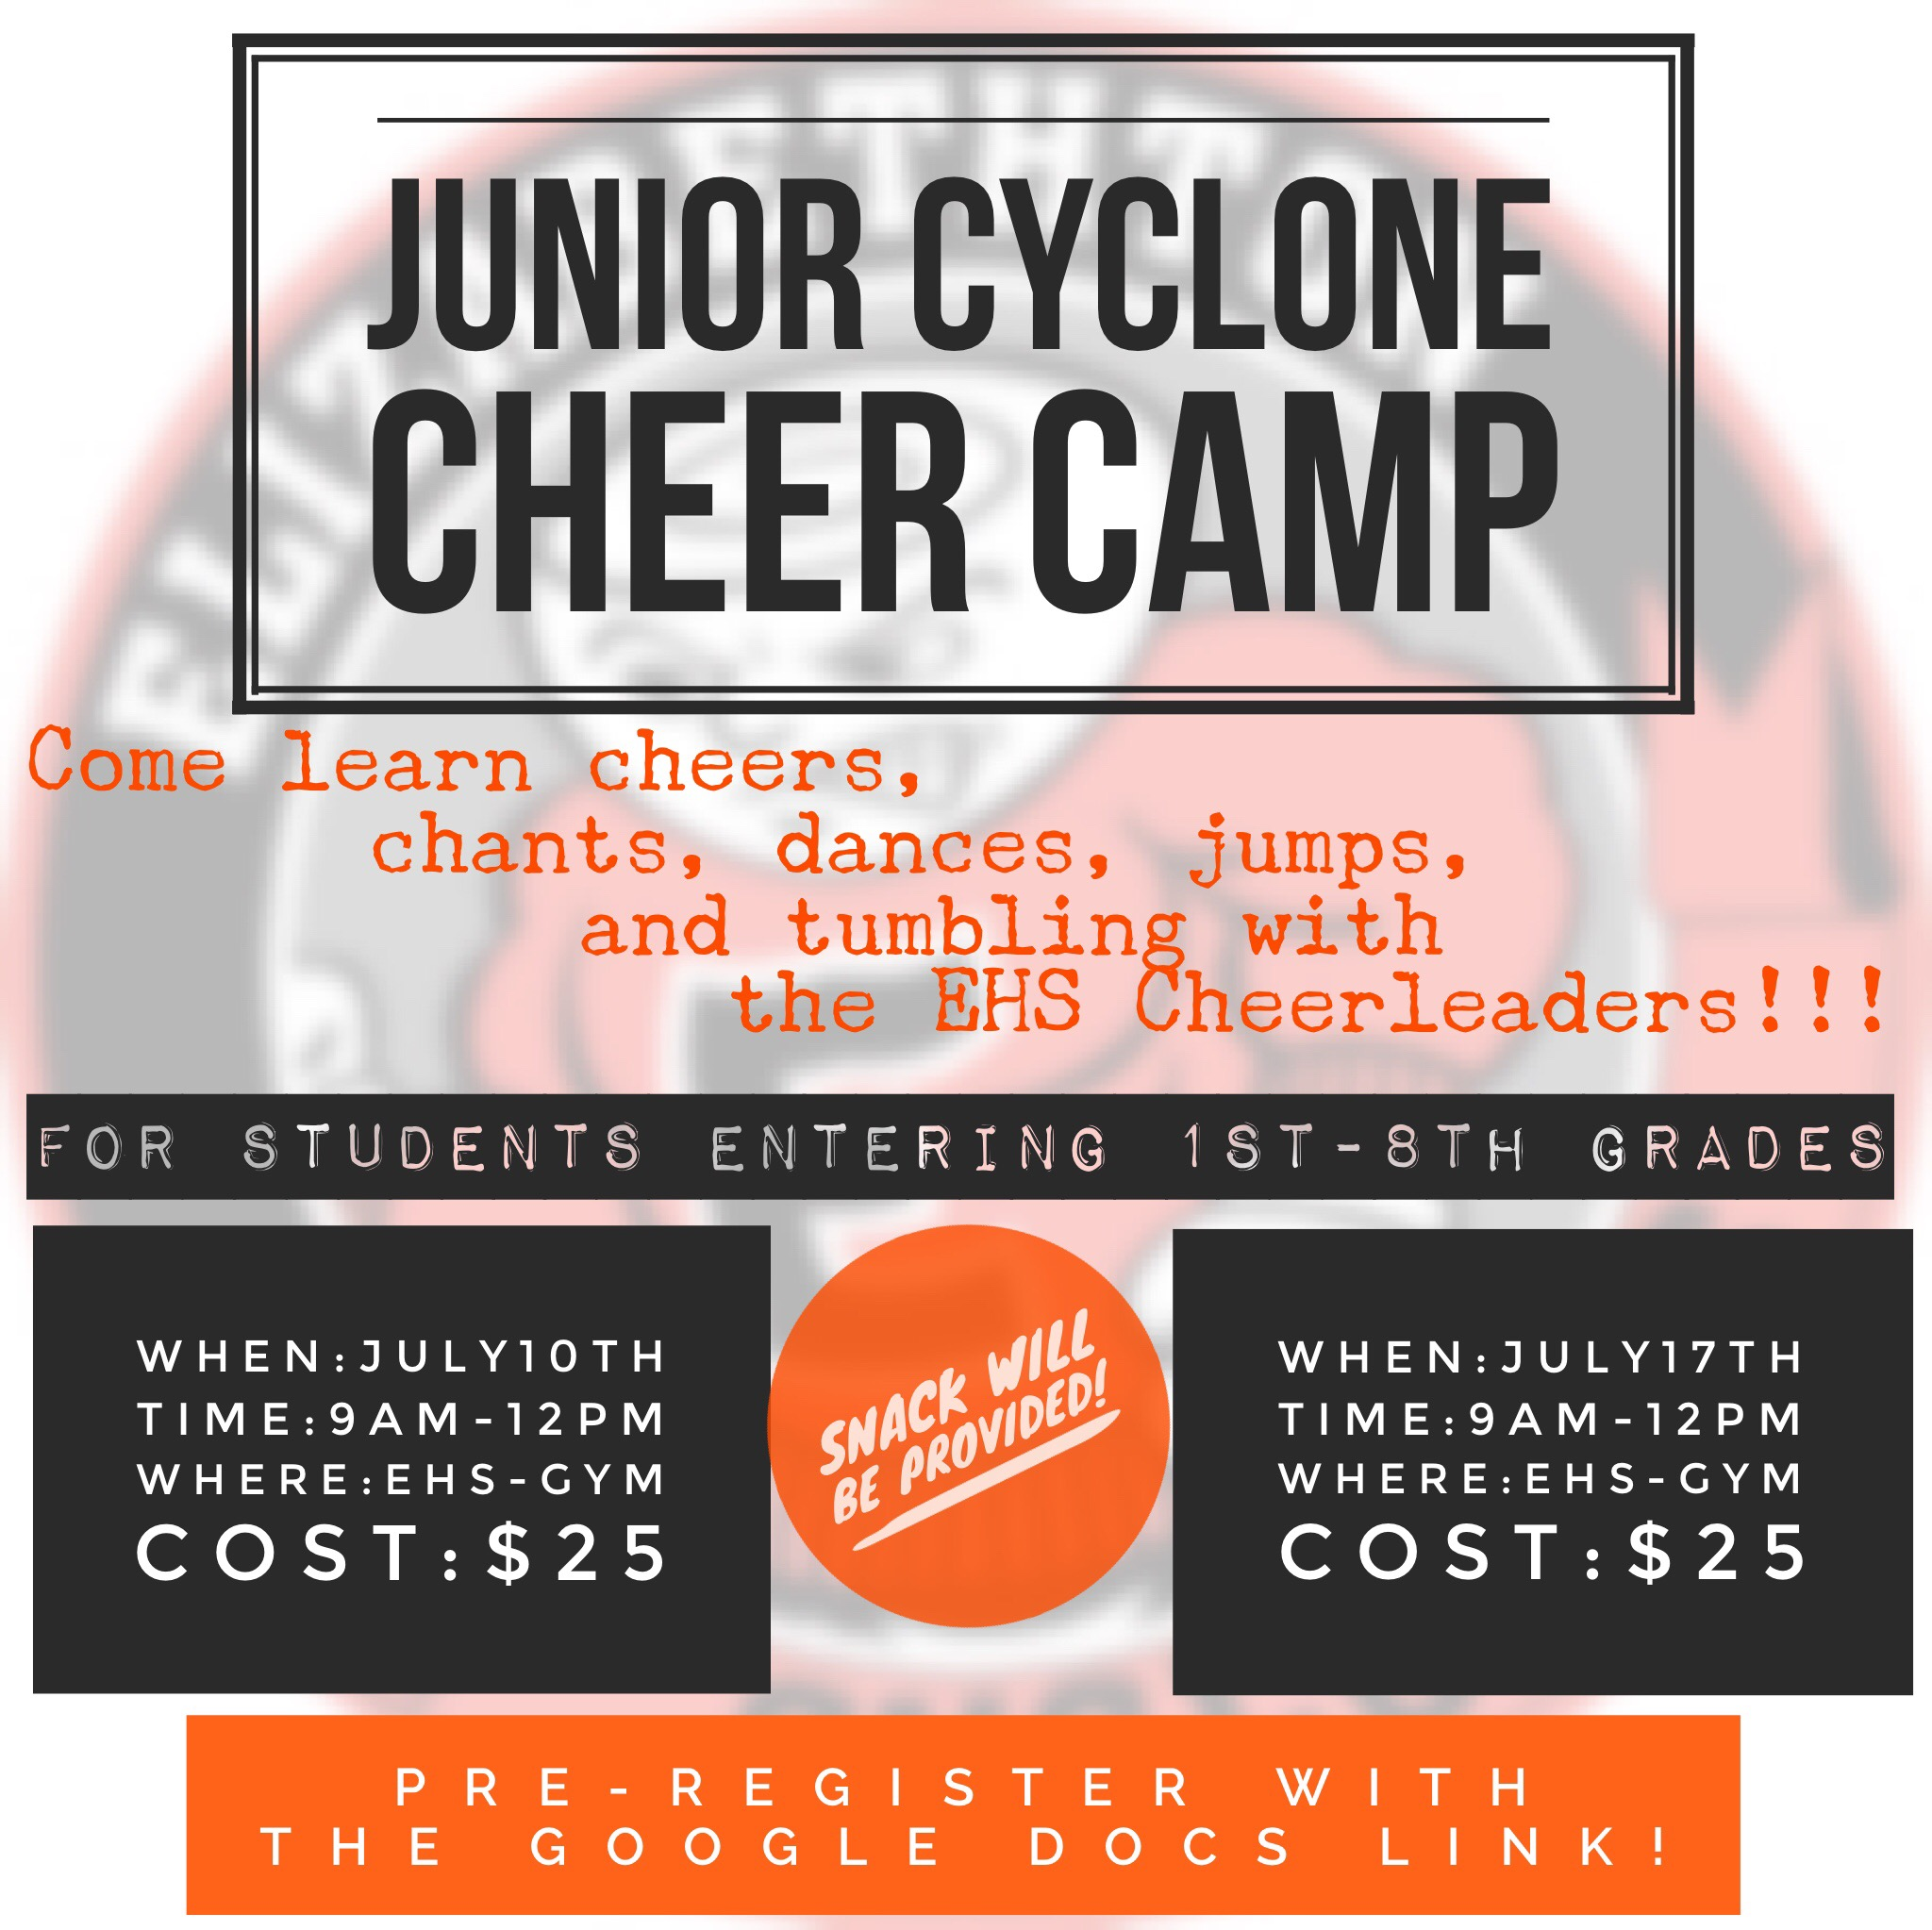 Cheer Camp Flyer